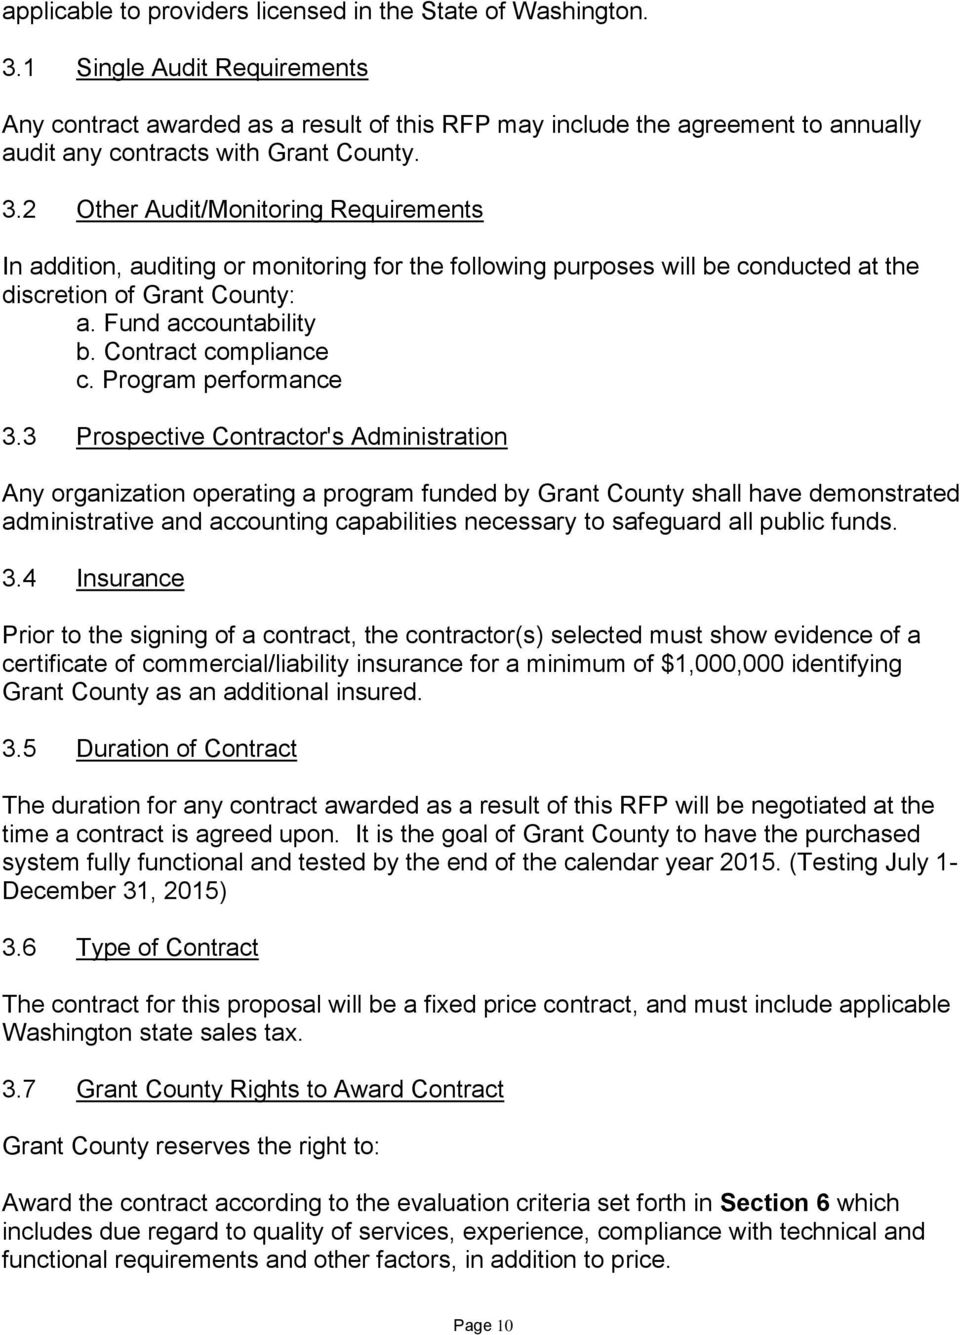 2 Other Audit/Monitoring Requirements In addition, auditing or monitoring for the following purposes will be conducted at the discretion of Grant County: a. Fund accountability b.